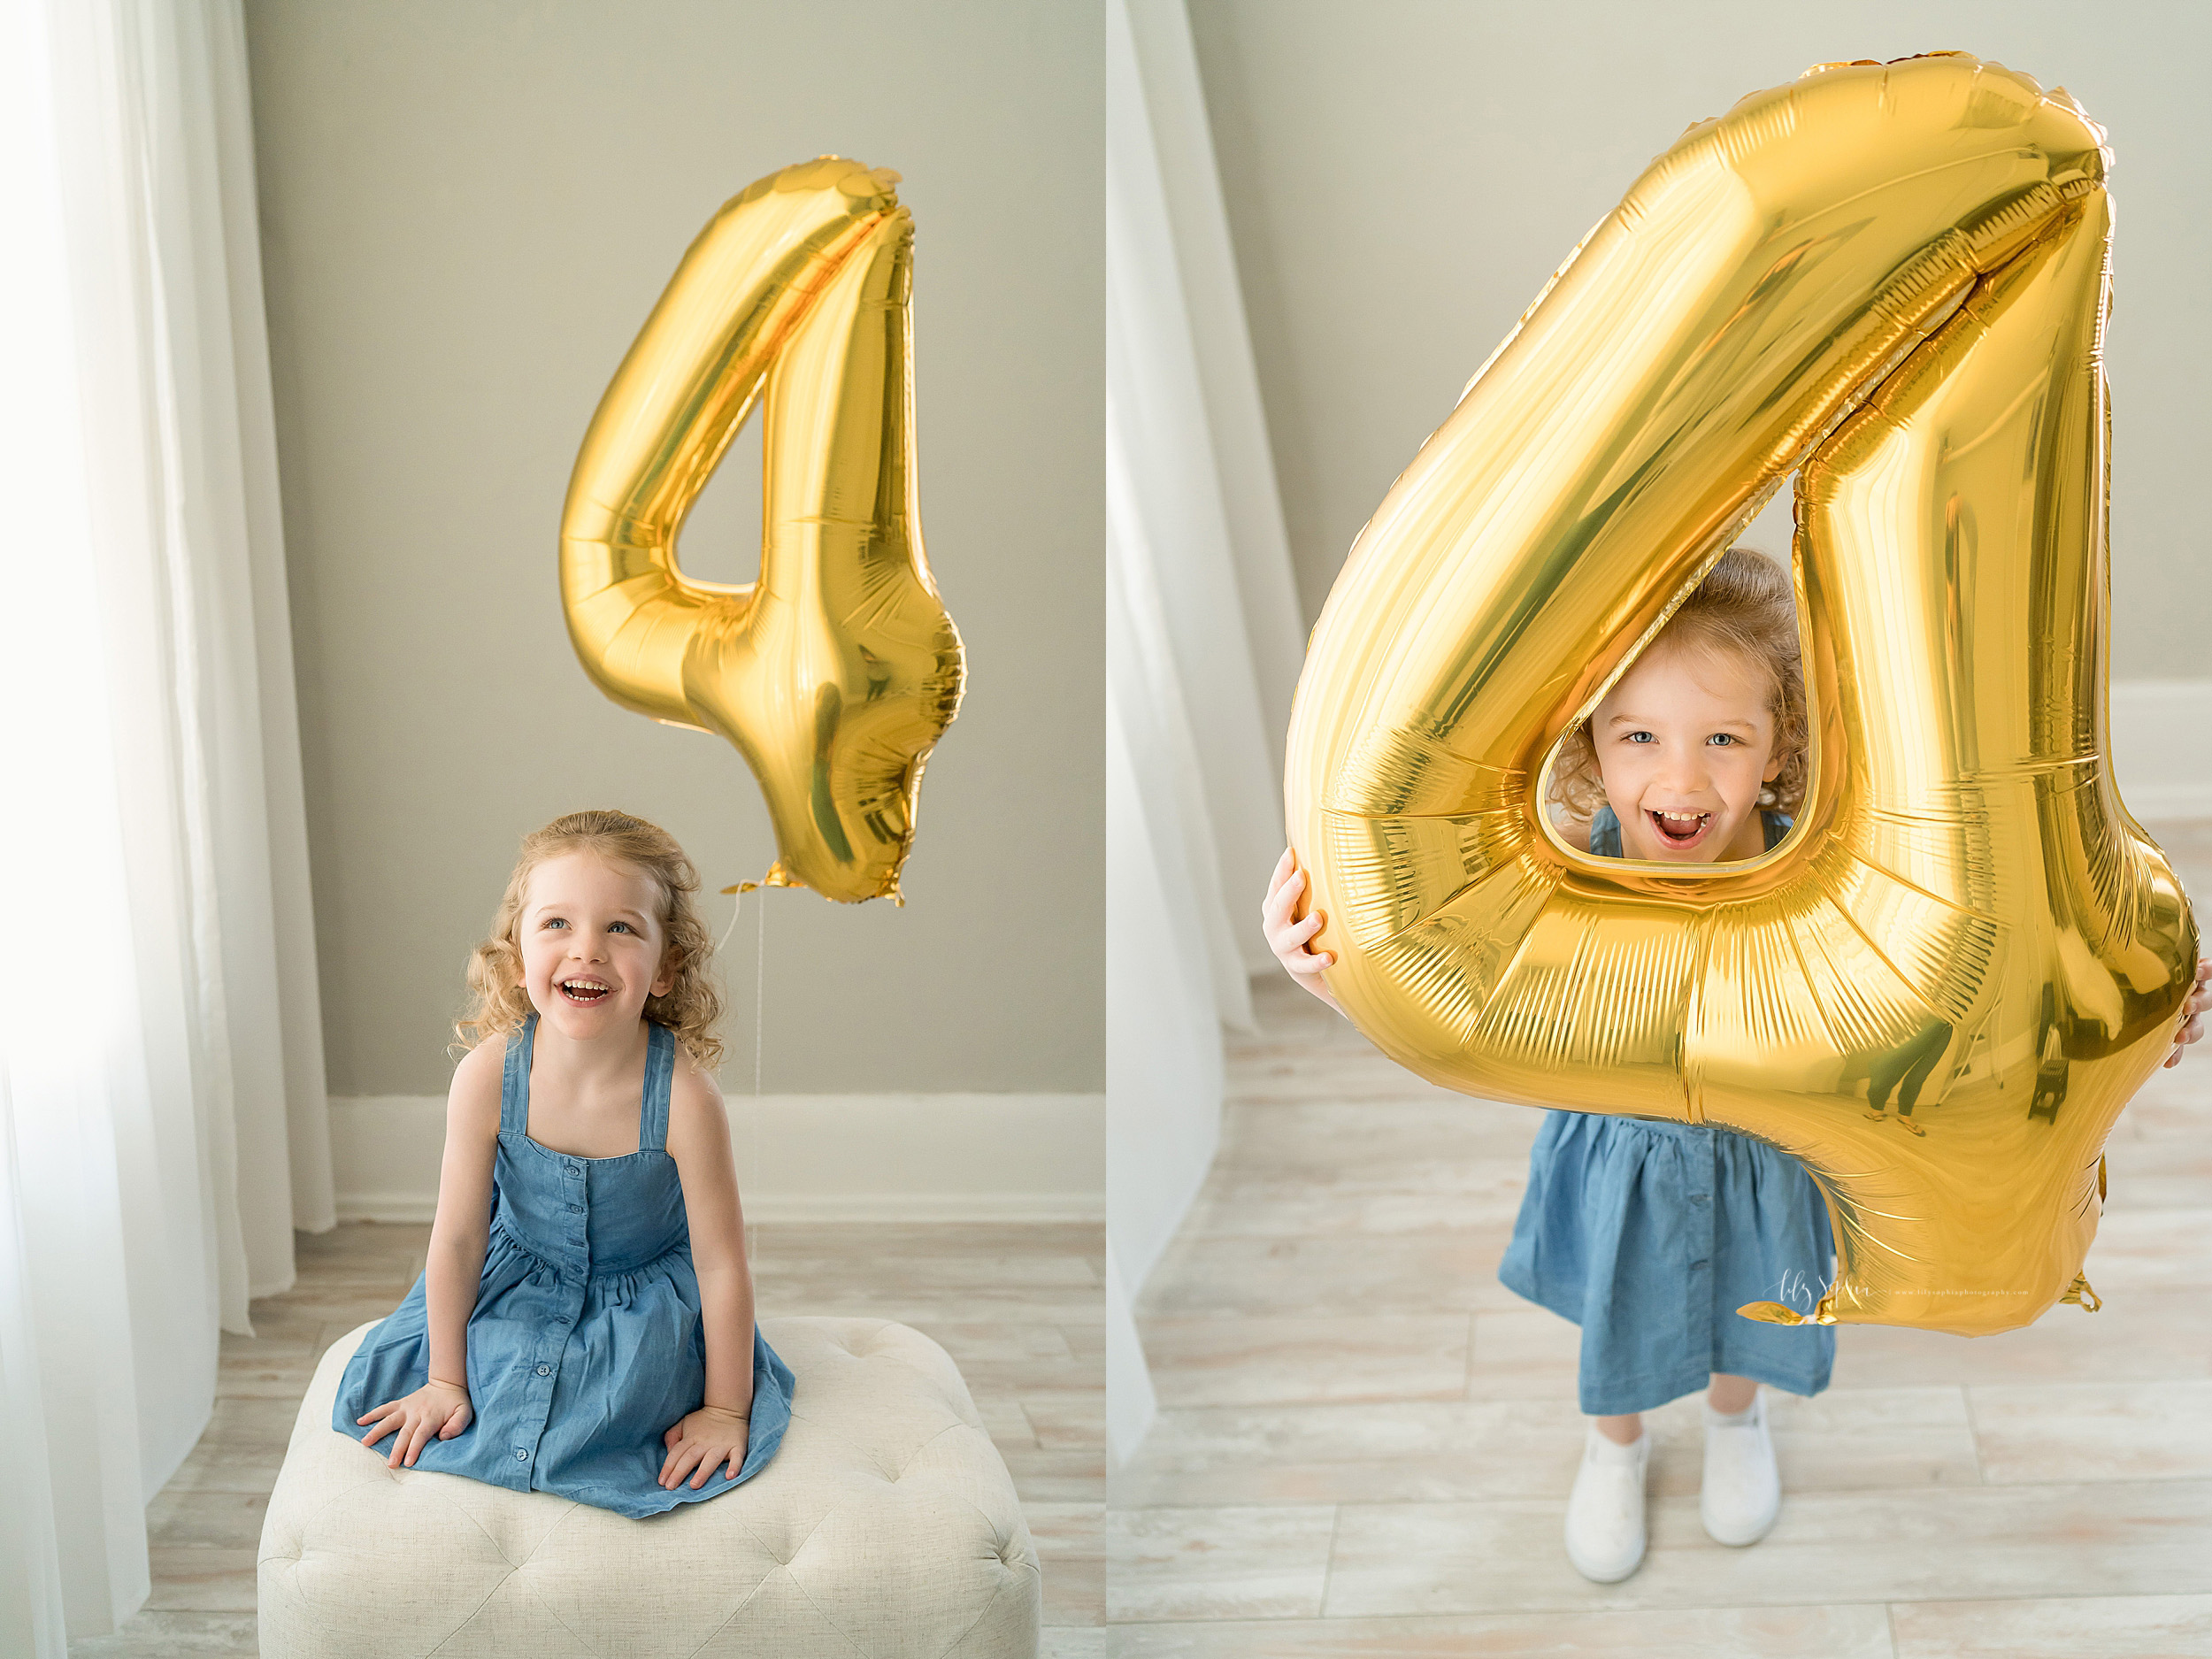 Split image milestone photo of a curly haired red-headed little girl sitting on a cushion next to a large gold number 4 balloon and standing while peeking through the large gold number 4 balloon in a natural light studio in Atlanta.